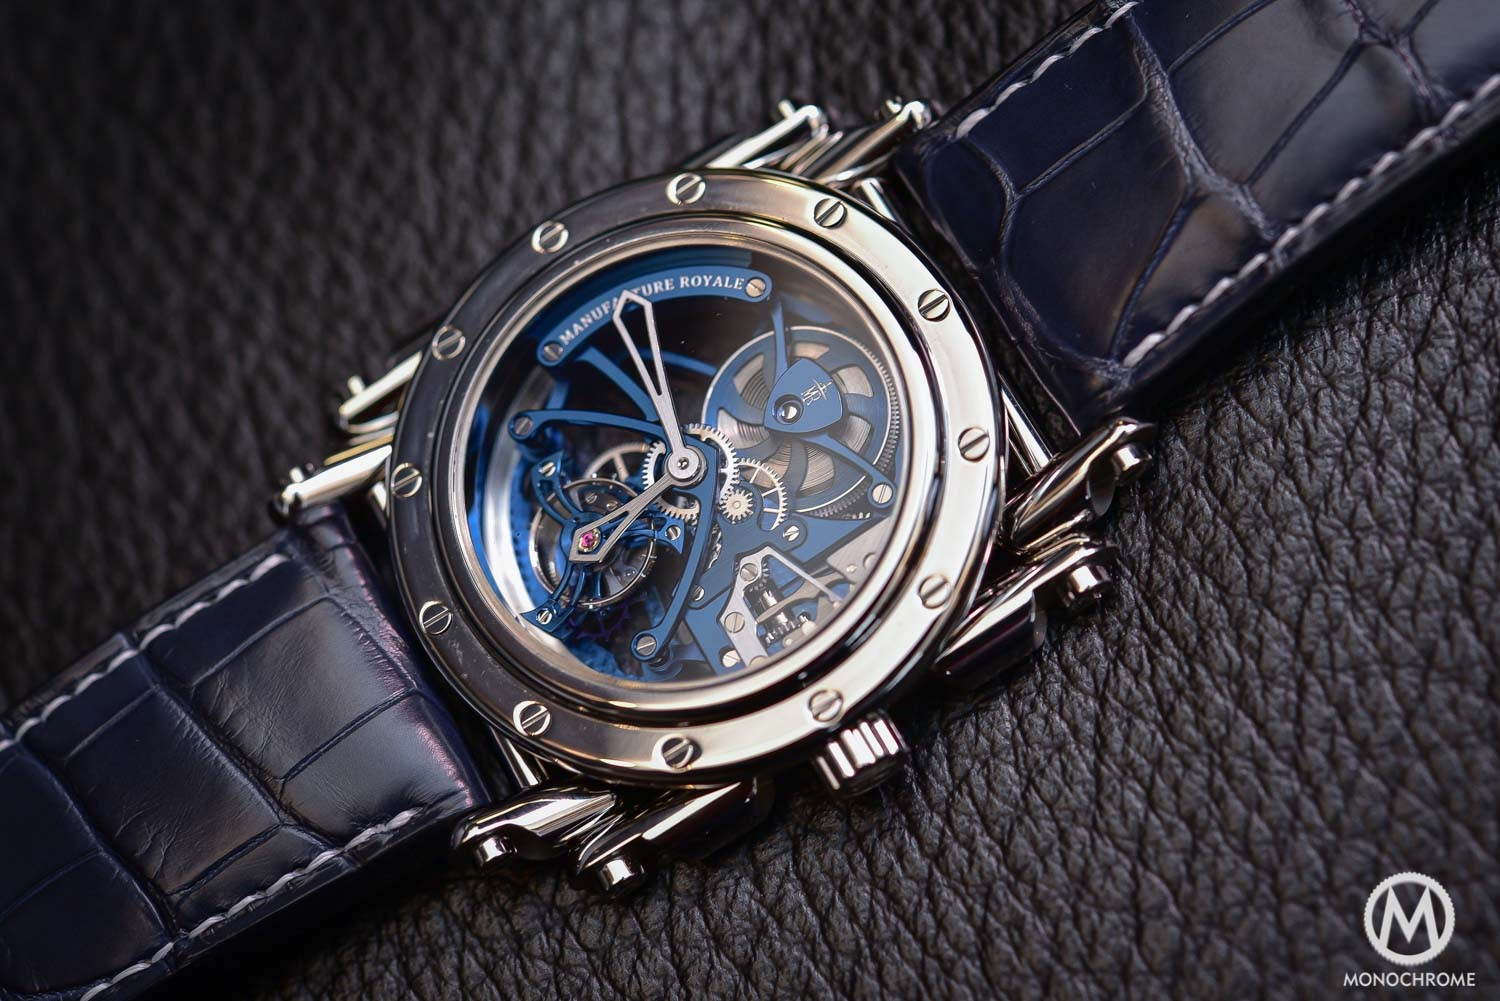 Manufacture Royale Androgyne Royale Skeleton Tourbillon Steel blue